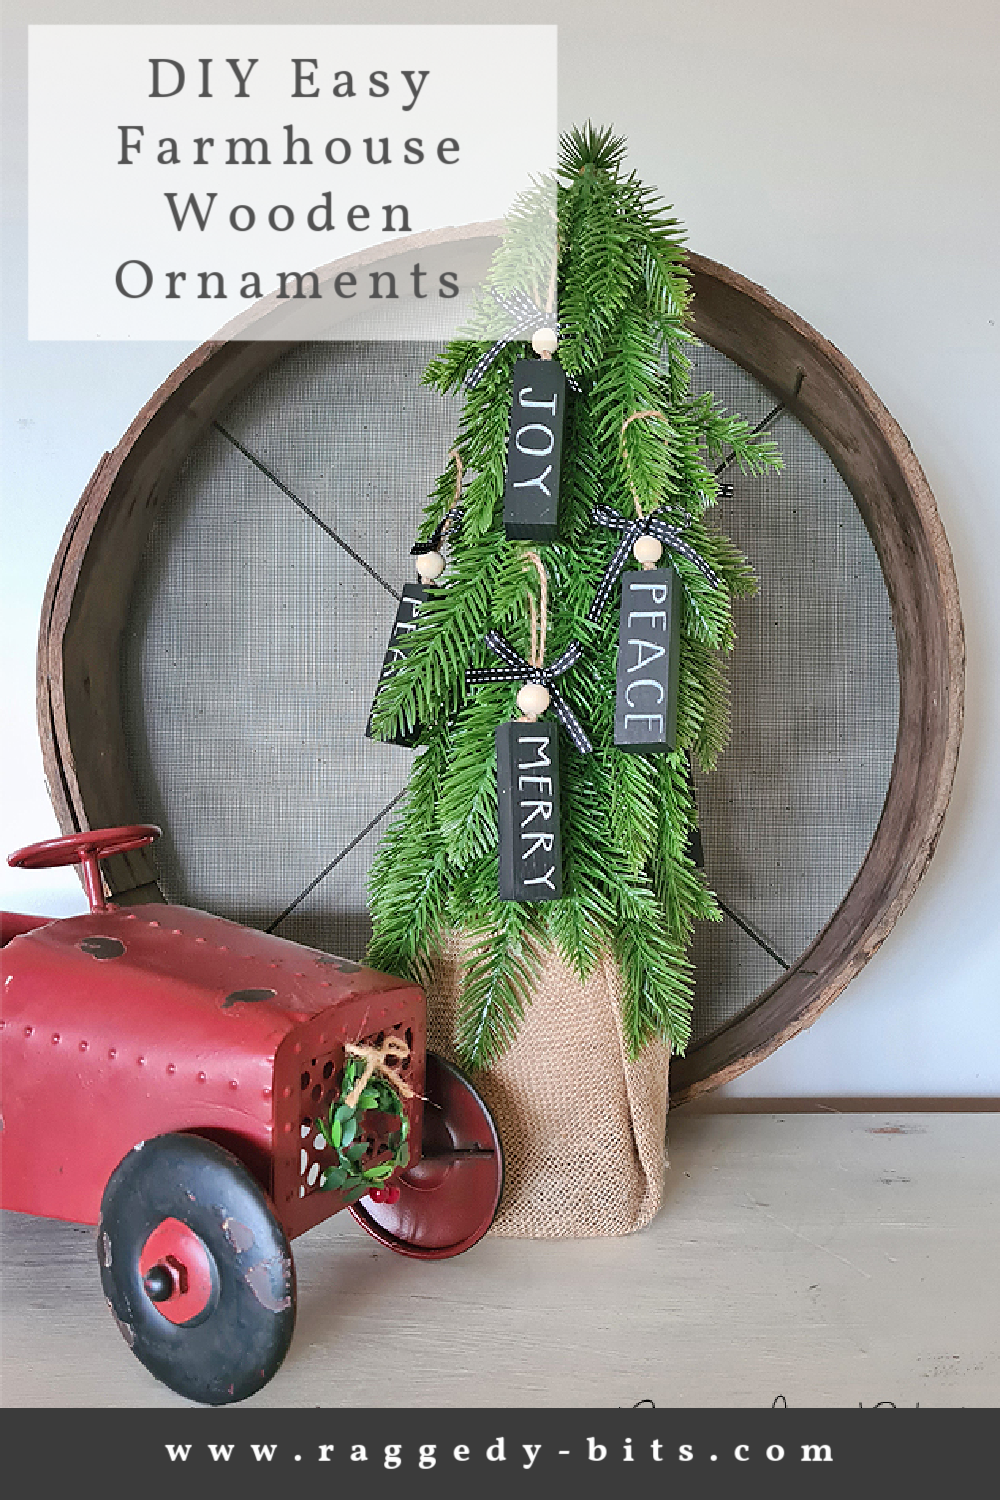 Sharing how to make Easy Wooden Farmhouse Christmas Ornaments to decorate your tree with. They would also make awesome present toppers | www.raggedy-bits.com | #raggedybits #DIY #wooden #ornaments #farmhouse #christmas #decorations #fusionmineralpaint #coalblack #champlain